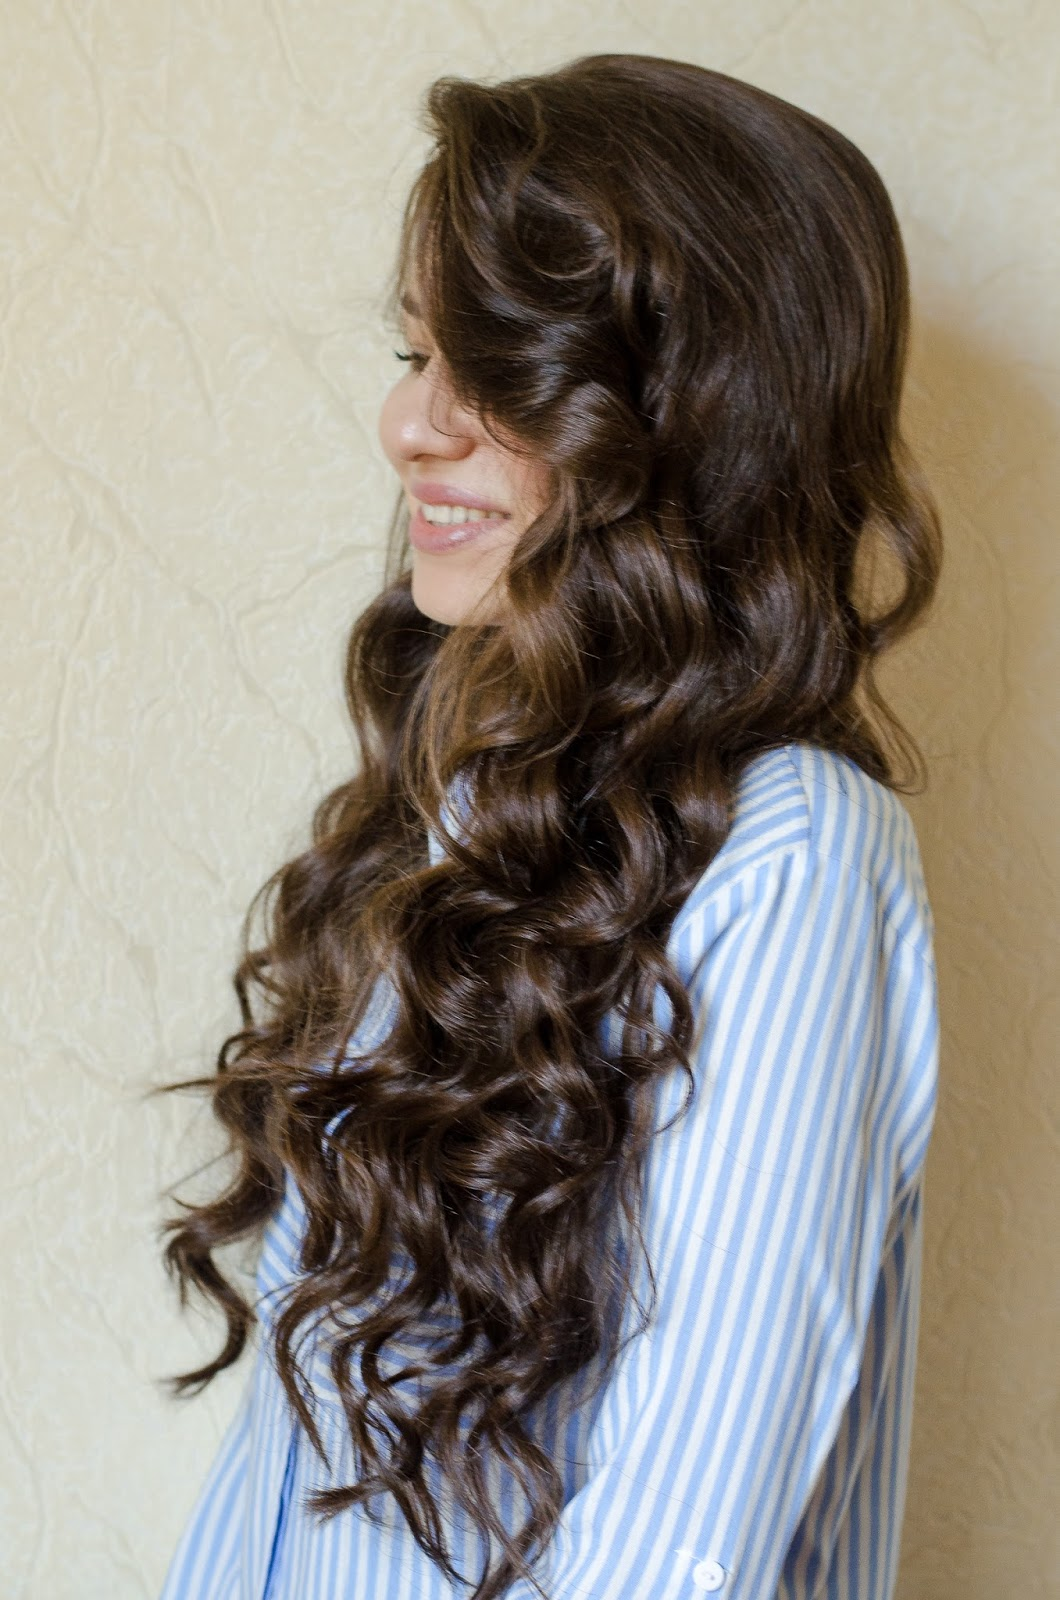 diyorasnotes-fashion-blogger-hairstyle-wand-curler-irresistibleme-sapphire